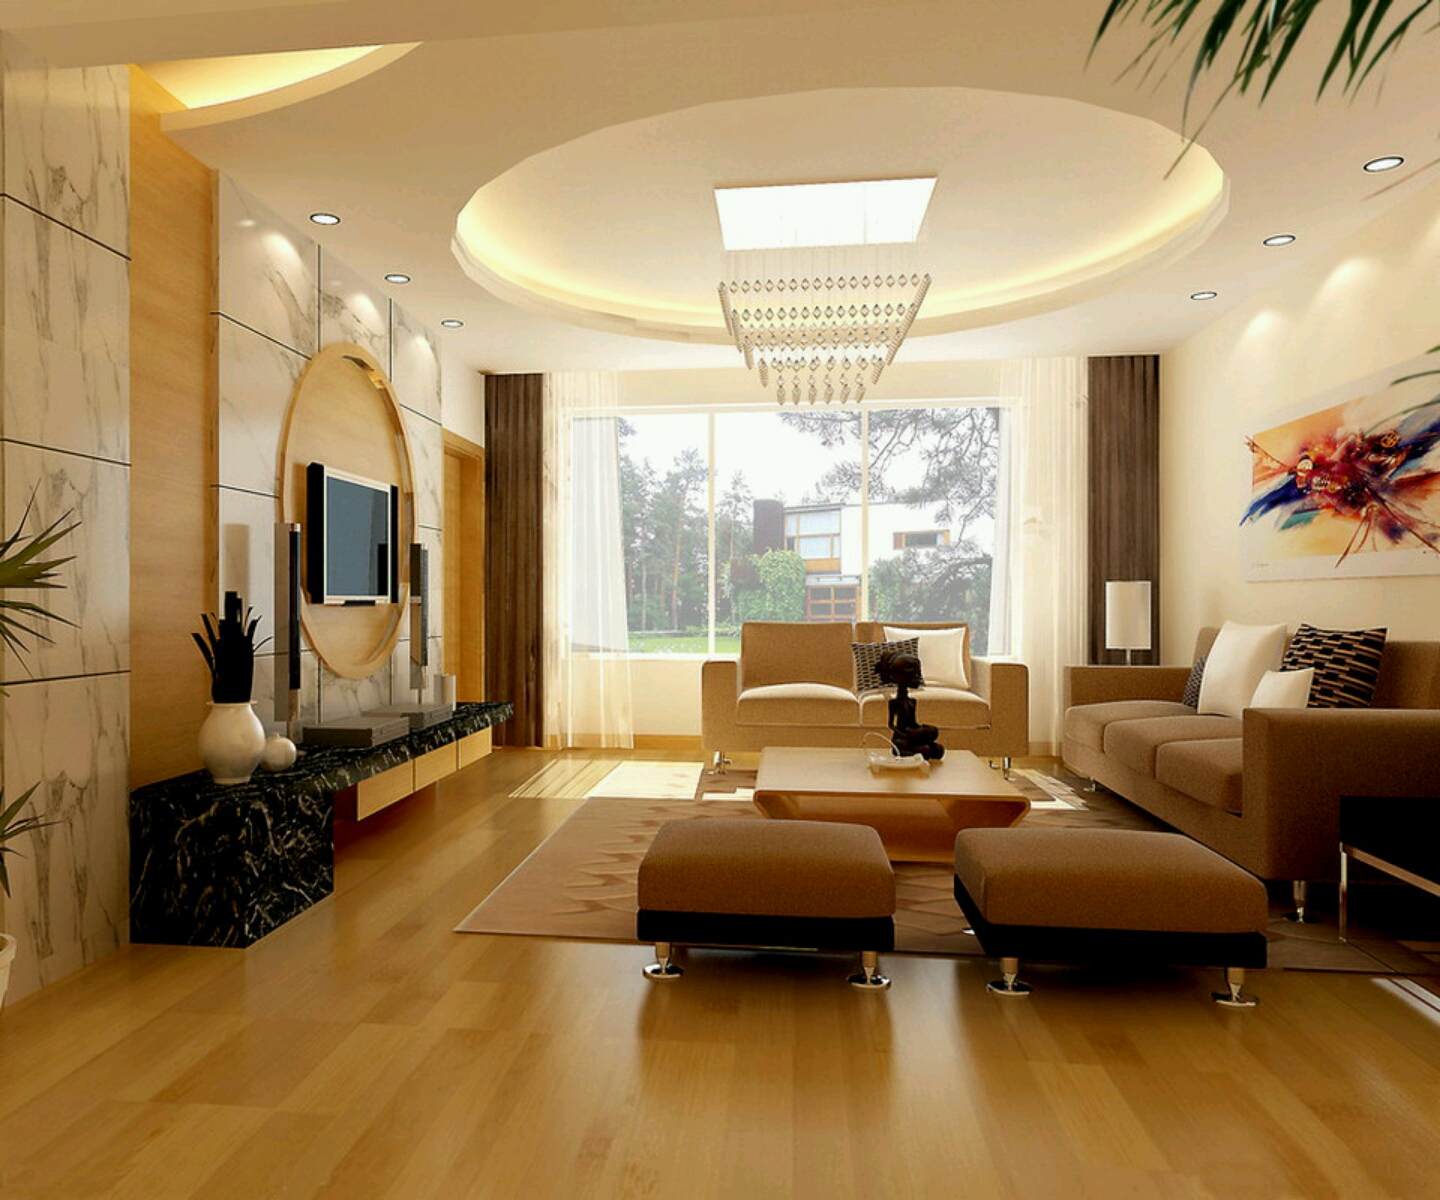 Modern interior decoration living rooms ceiling designs for New home interior design